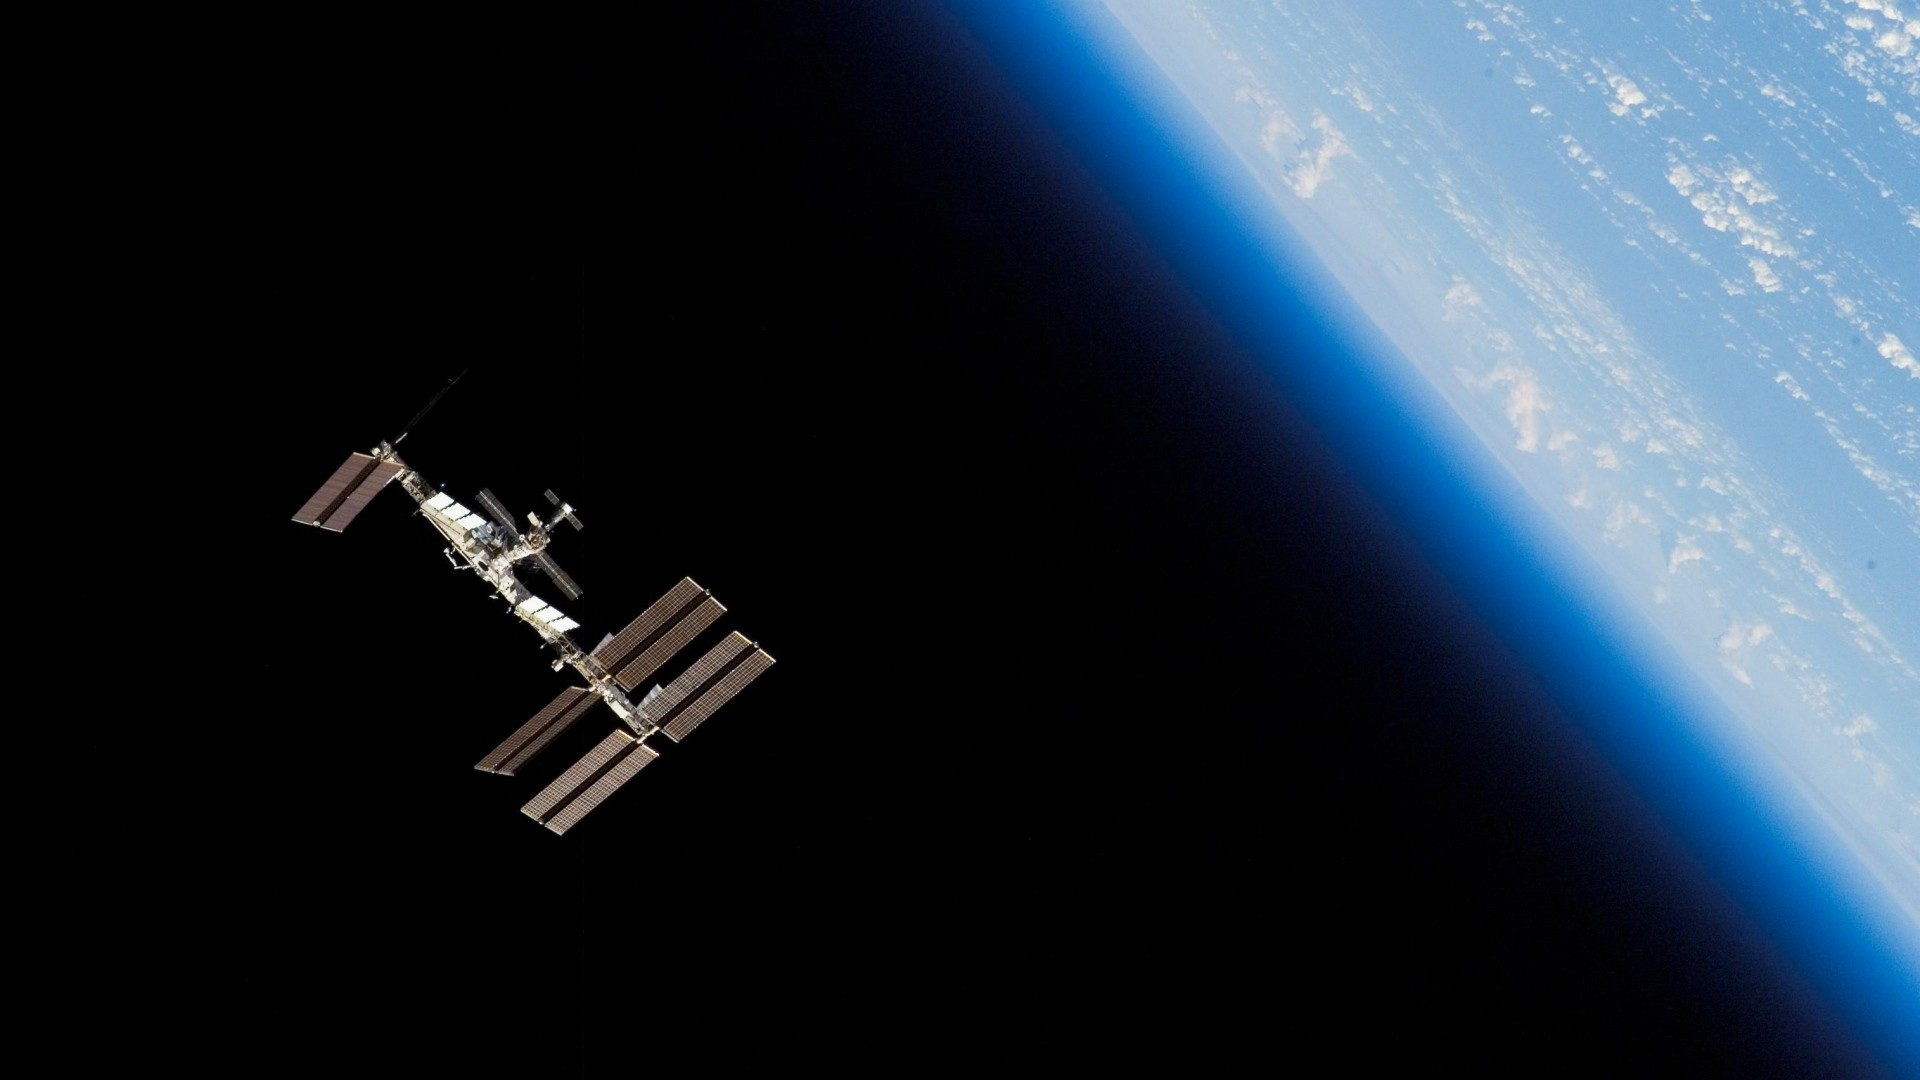 Wallpaper station iss, space, orbit, planet, earth